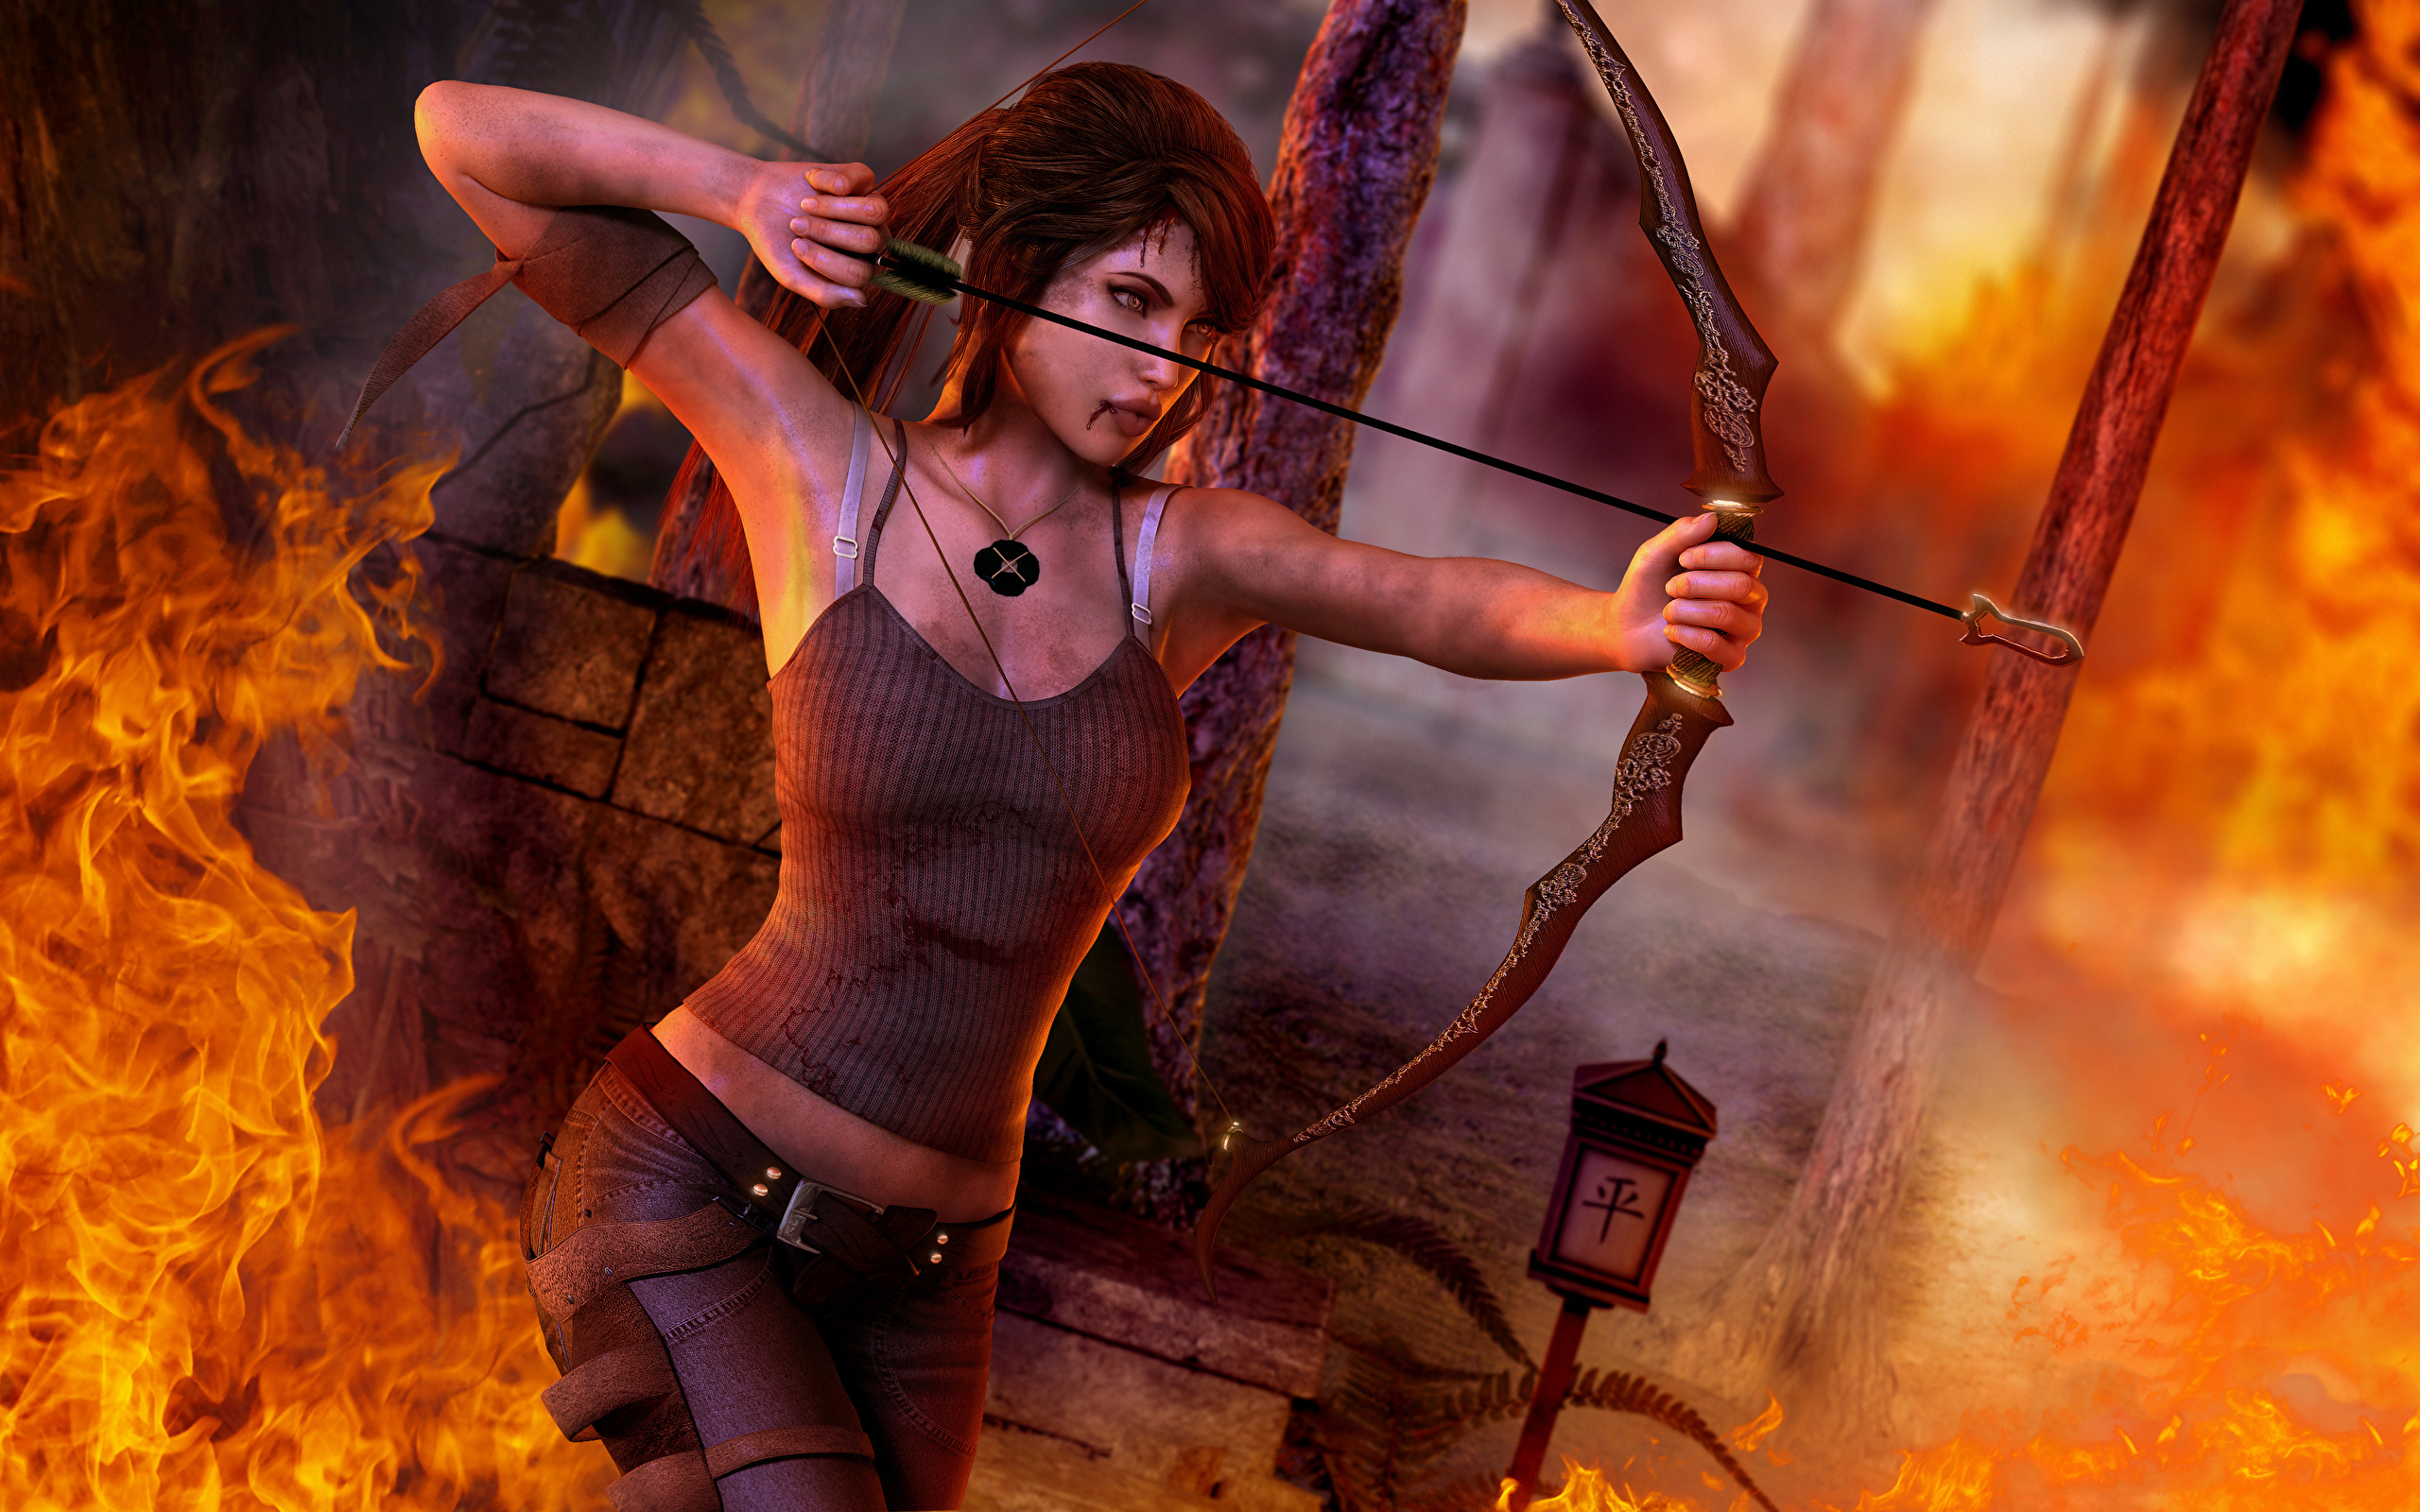 Lara croft tomb raider 3d sex adult pictures